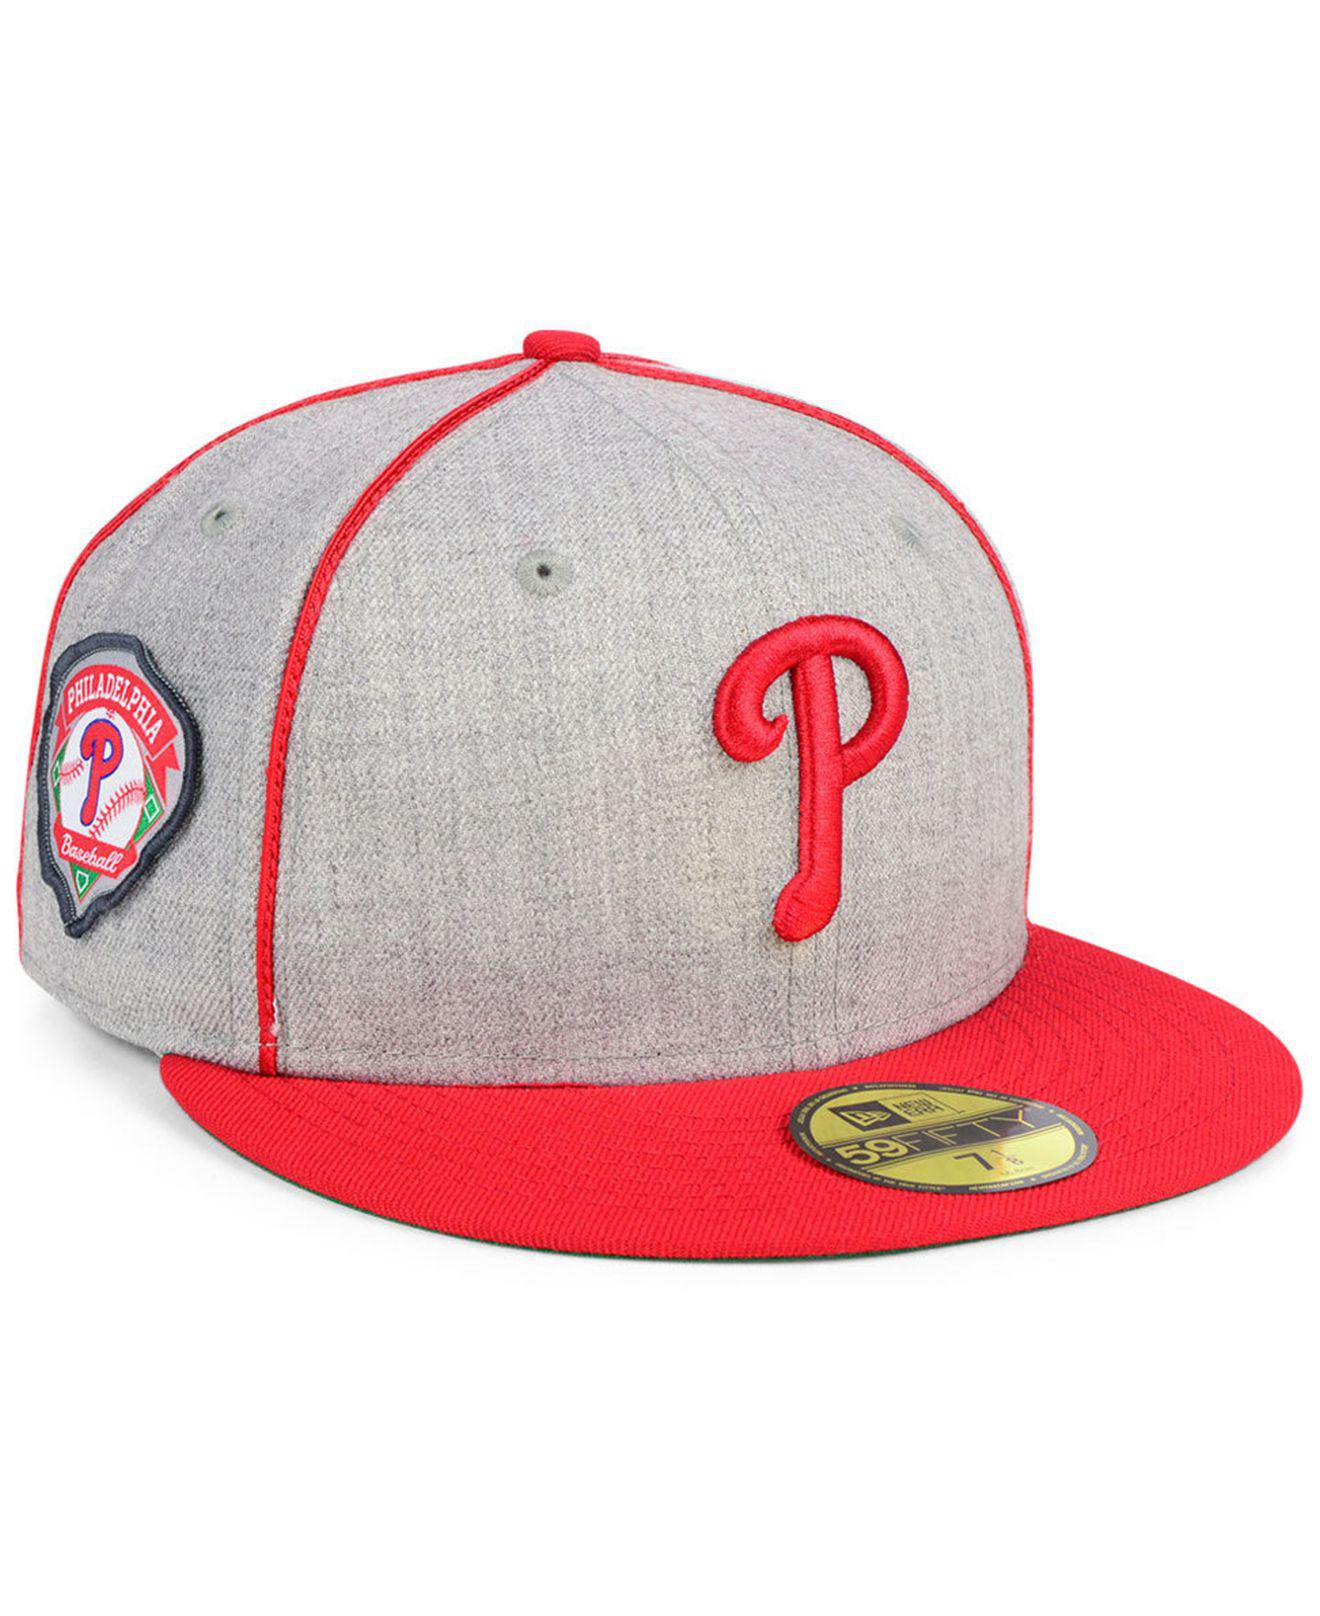 c54a6fea16c KTZ - Red Philadelphia Phillies Stache 59fifty Fitted Cap for Men - Lyst.  View fullscreen